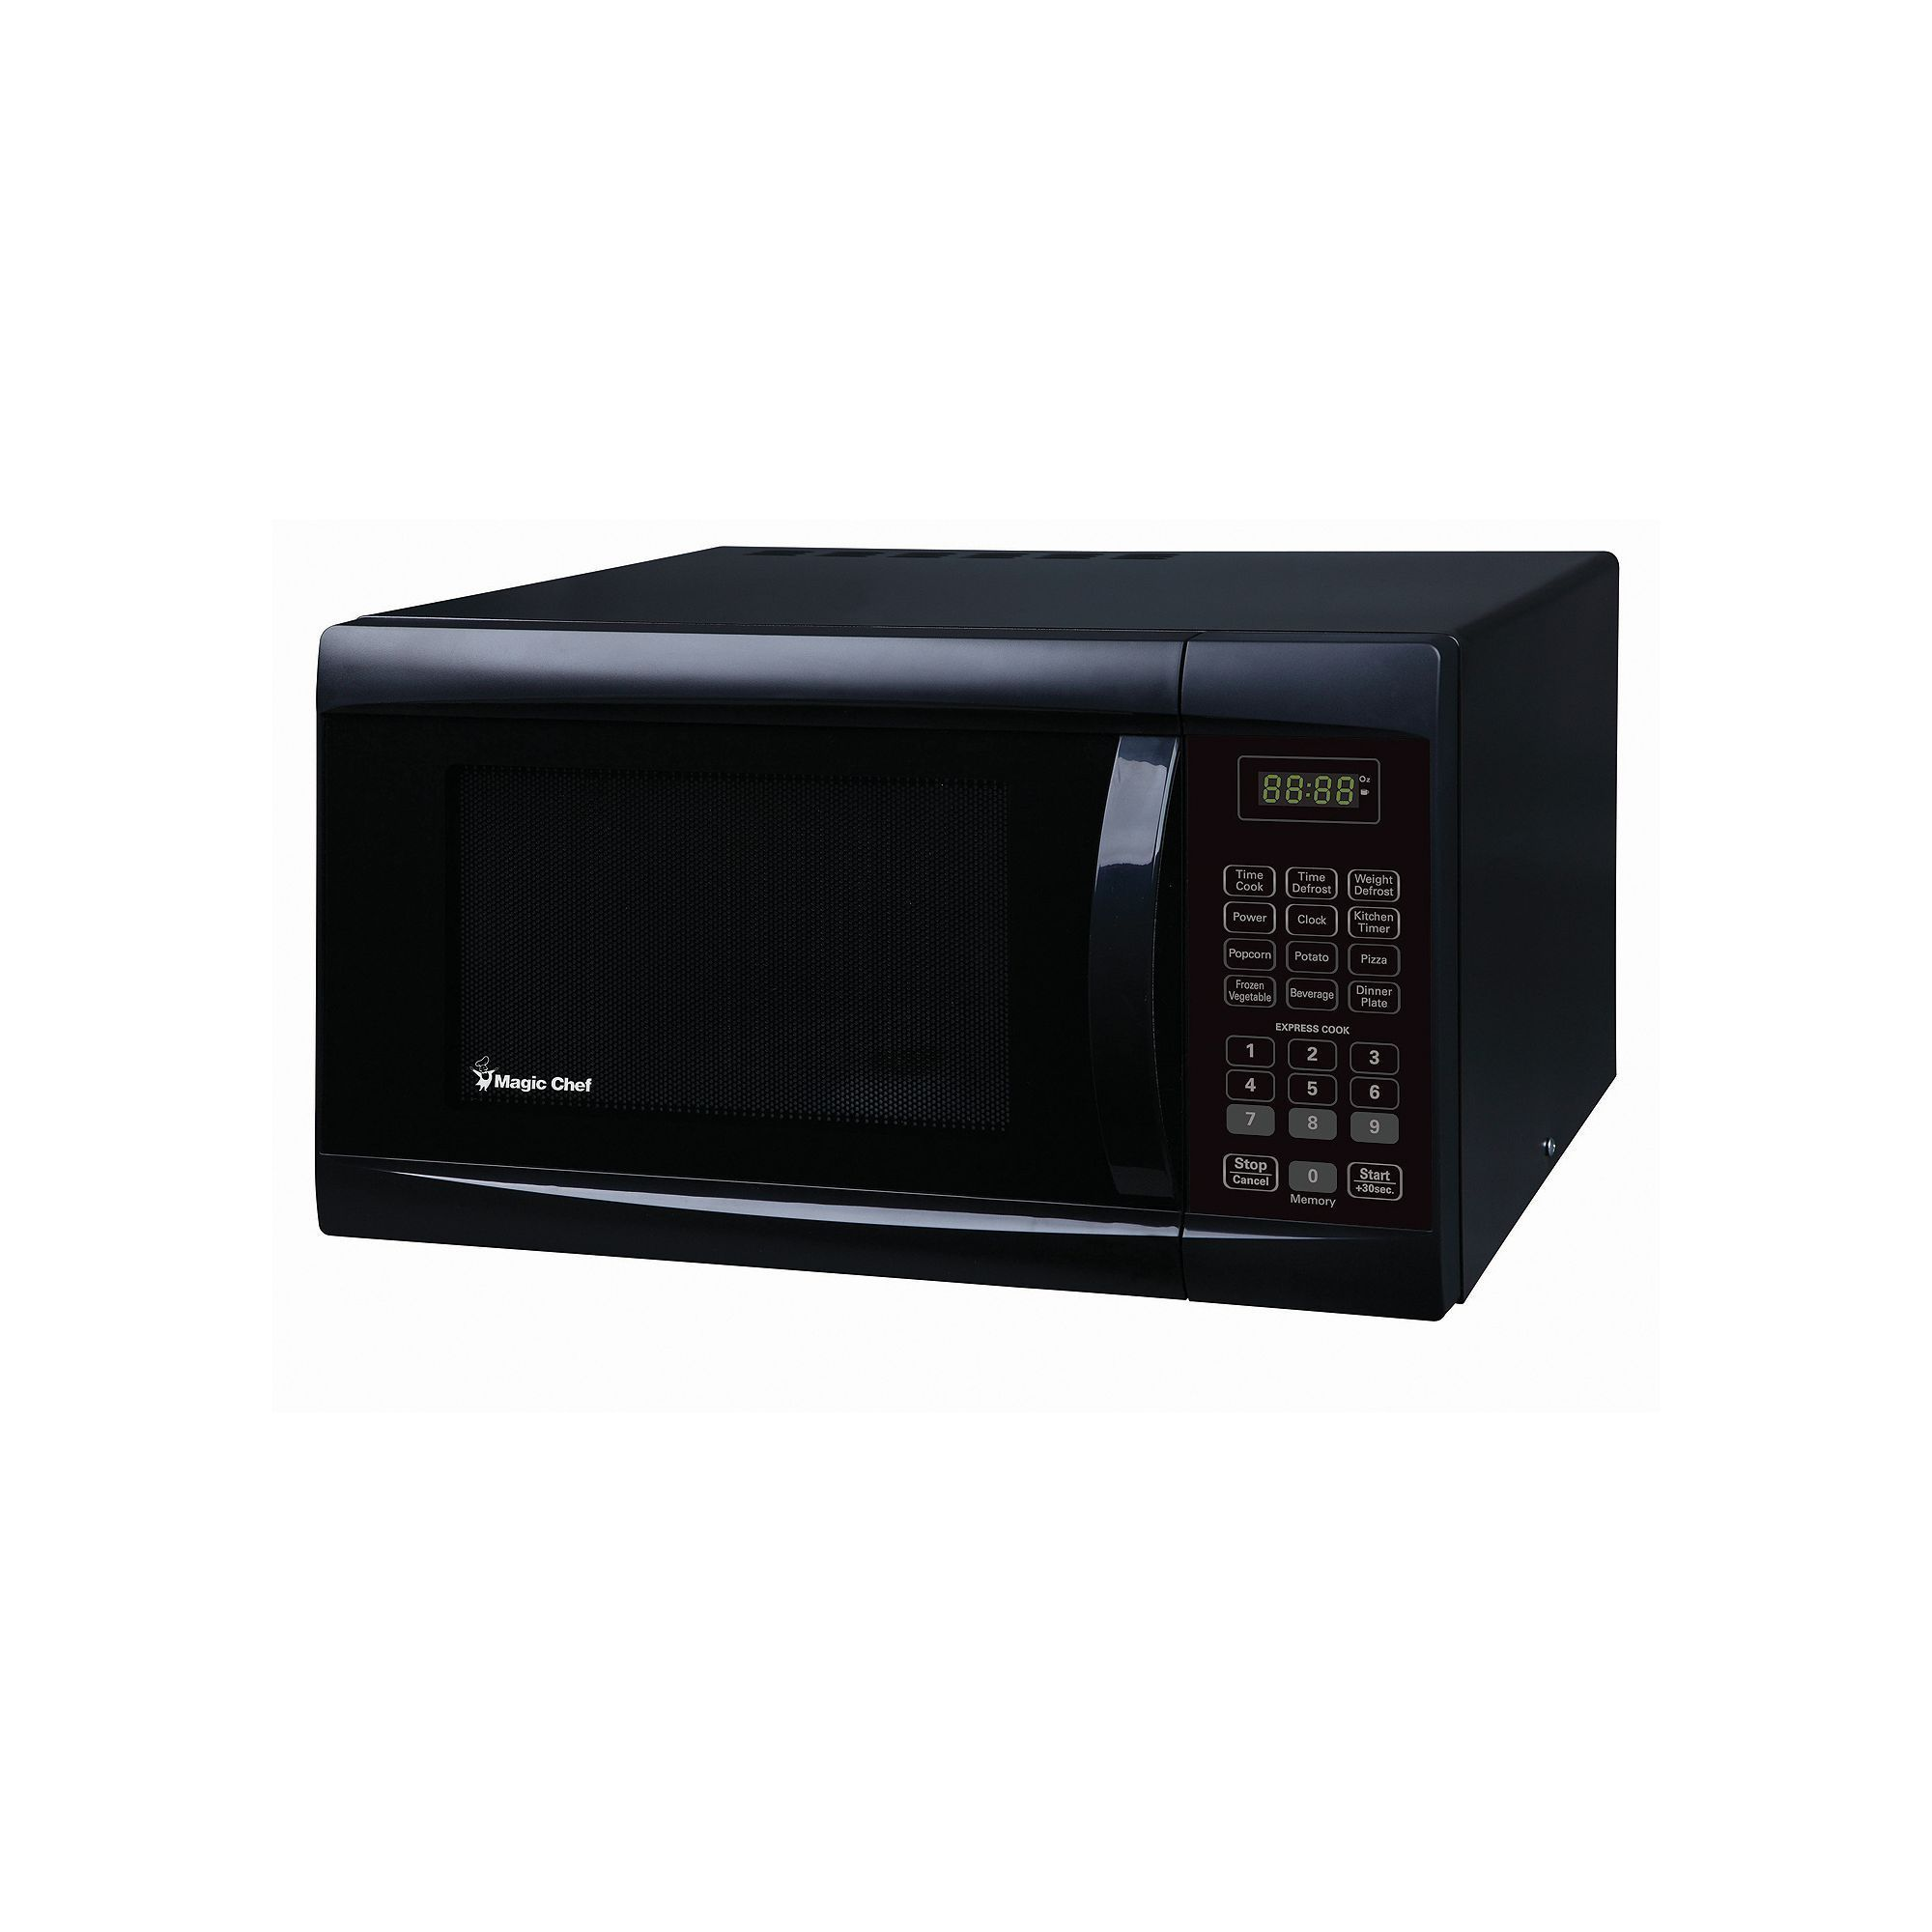 Magic Chef At Kohl S Our Entire Selection Of Kitchen Liances Including This Countertop Microwave Oven